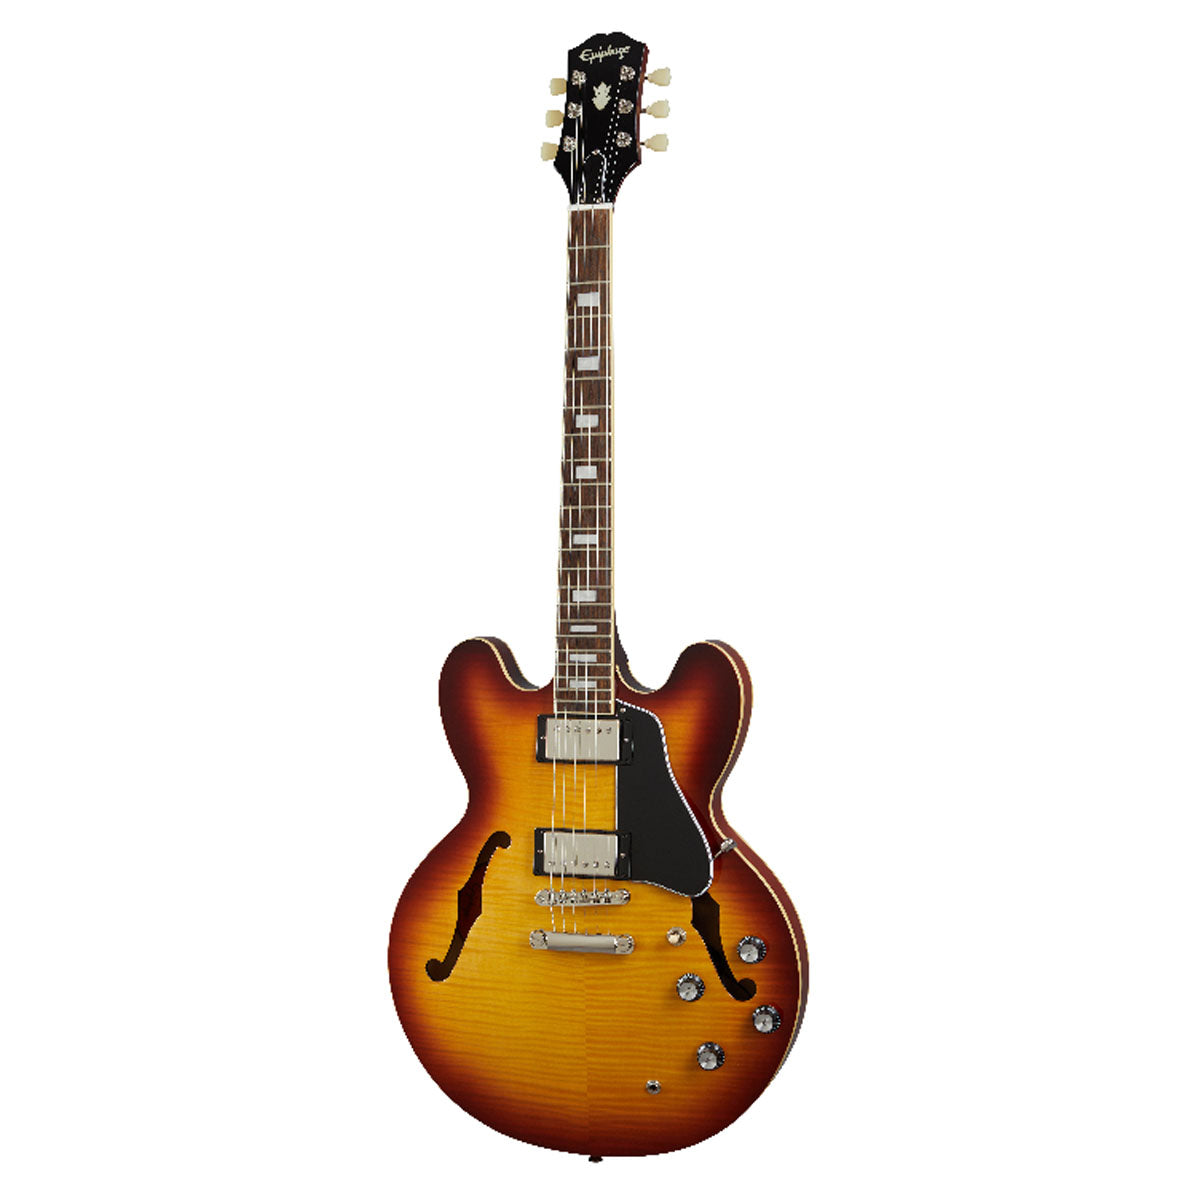 Epiphone ES-335 Figured Electric Guitar Semi-Hollow Raspberry Tea Burst - EIES335FRTBNH1